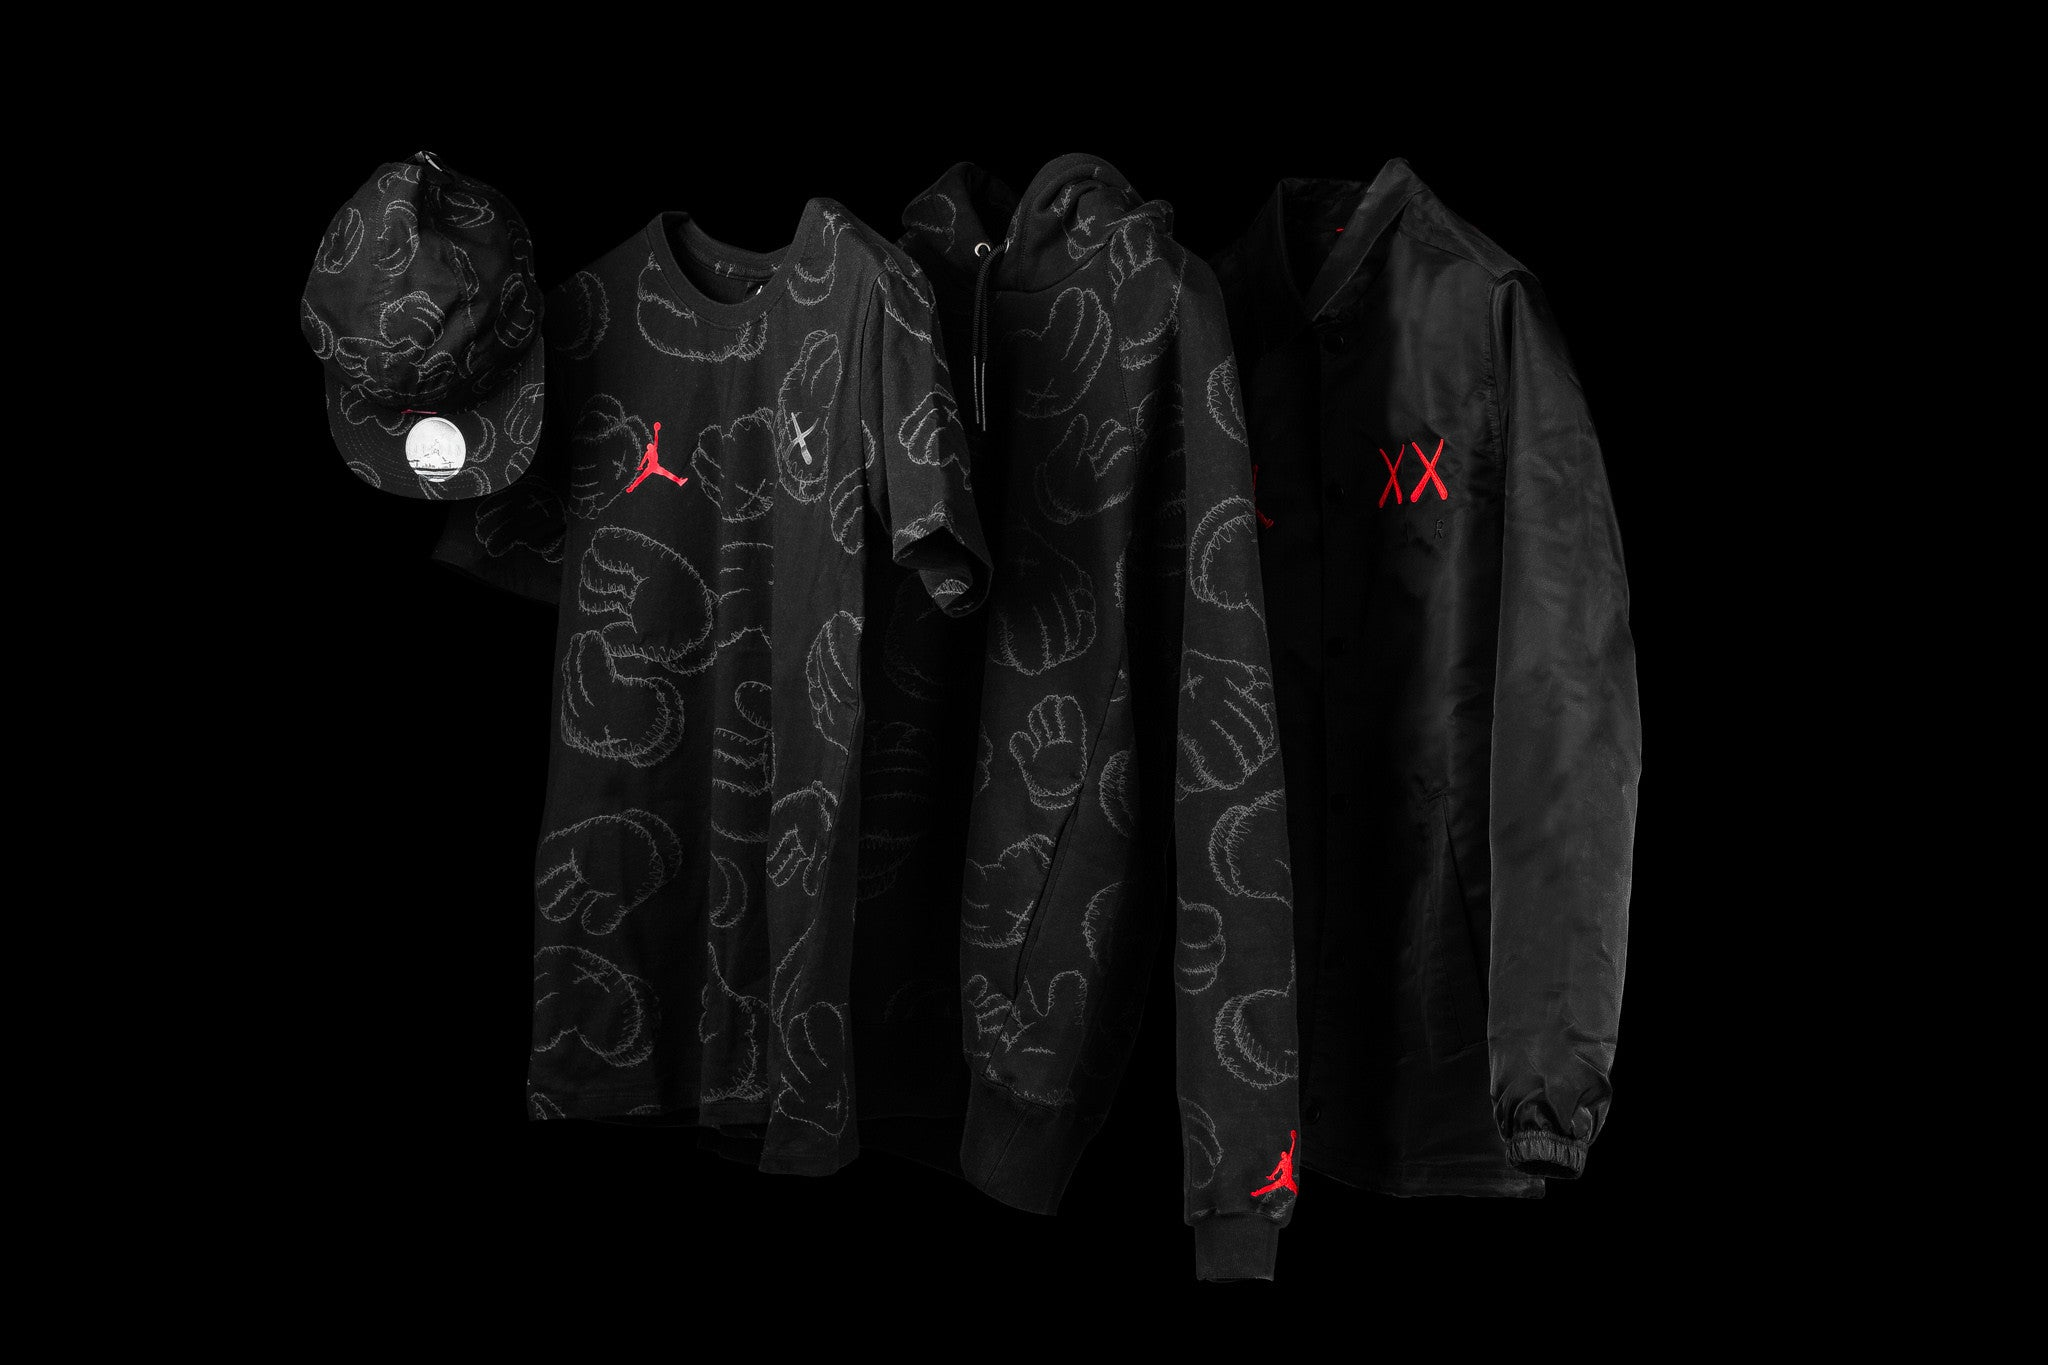 73c86e7f7ca7 KAWS x Jordan Apparel 04.16.17 In Store Only at Yorkville Location ...